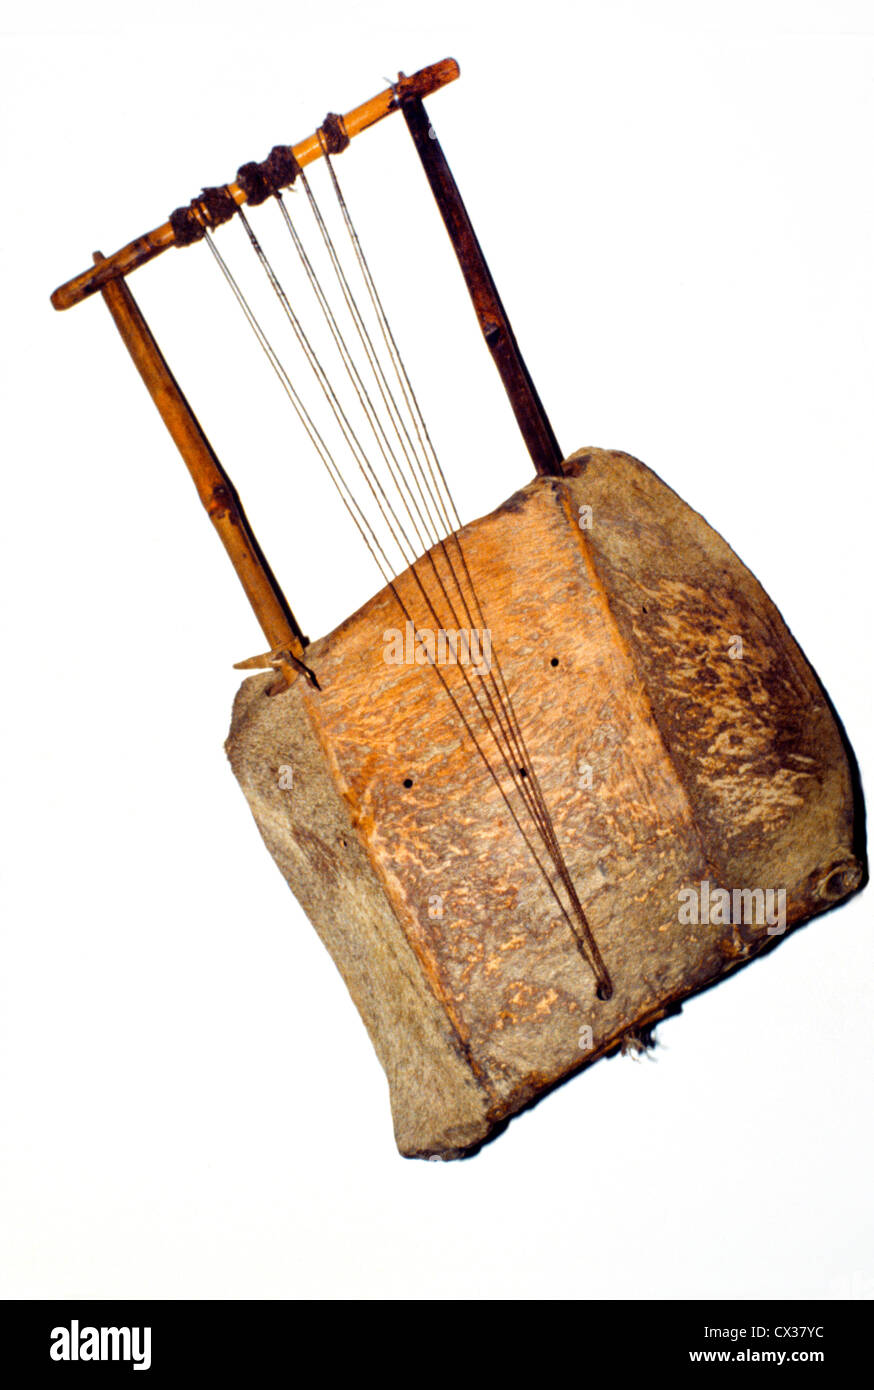 Khartoum Sudan Ethnographical Museum Stringed Musical Instrument - Stock Image